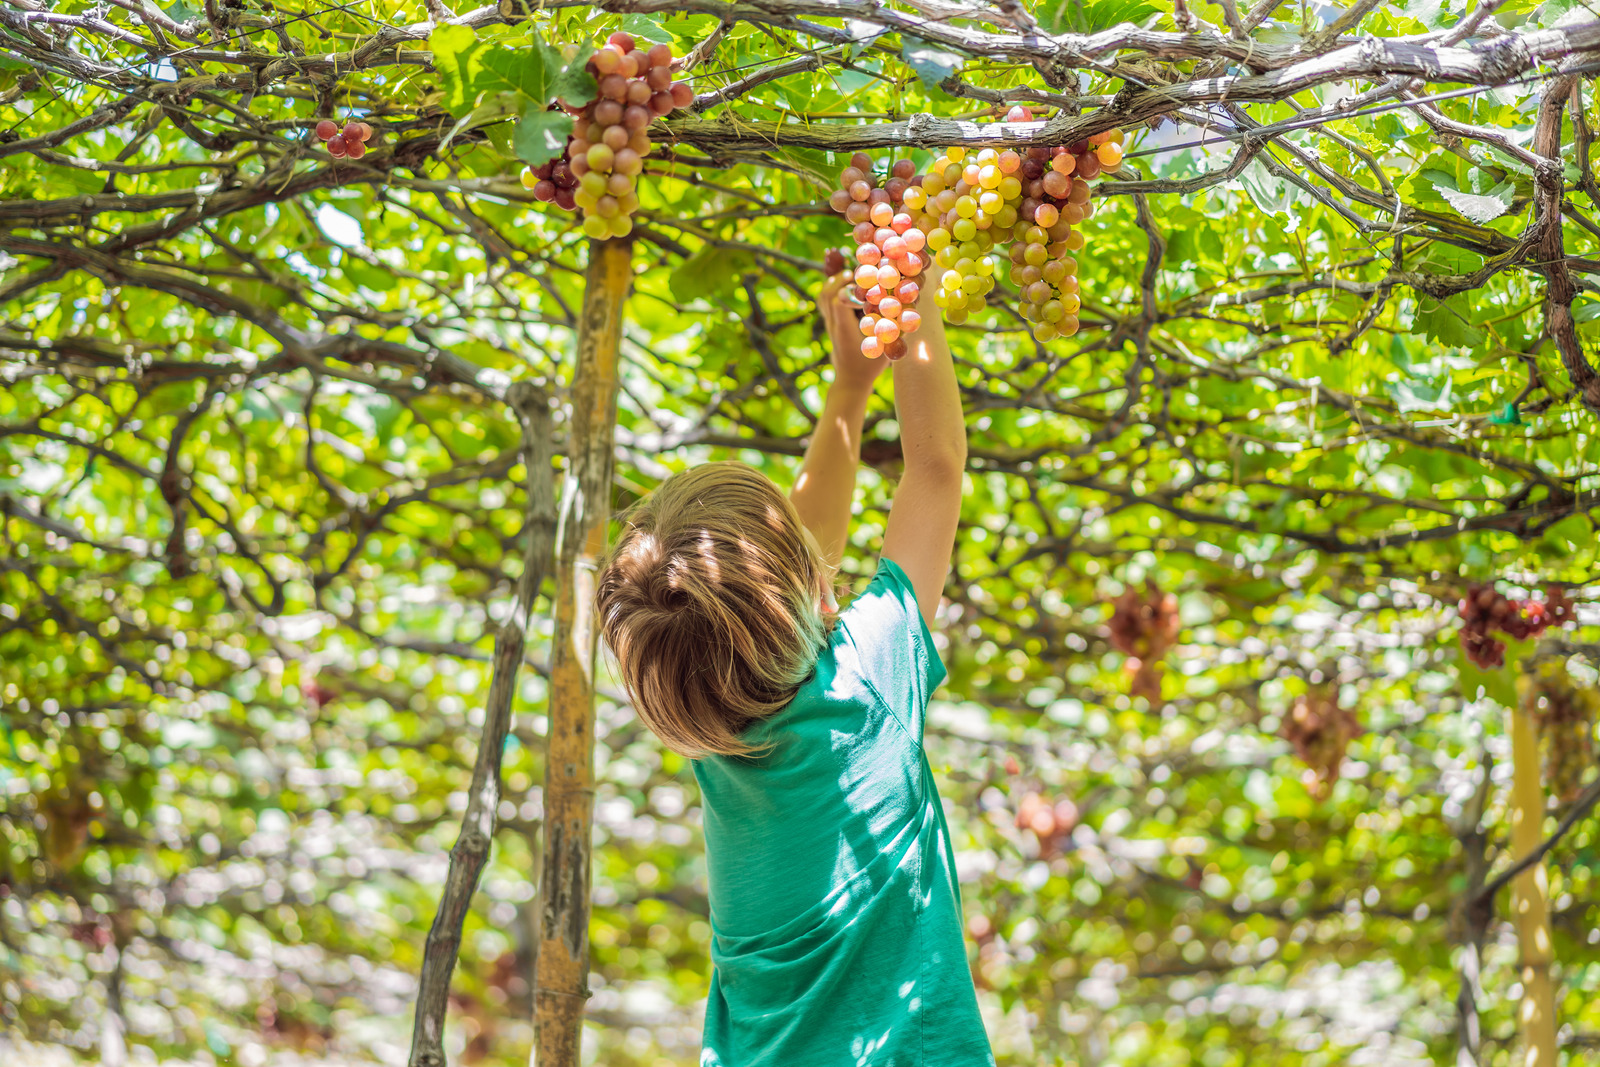 Consider agritourism for your next trip in order to support local farming communities while traveling.